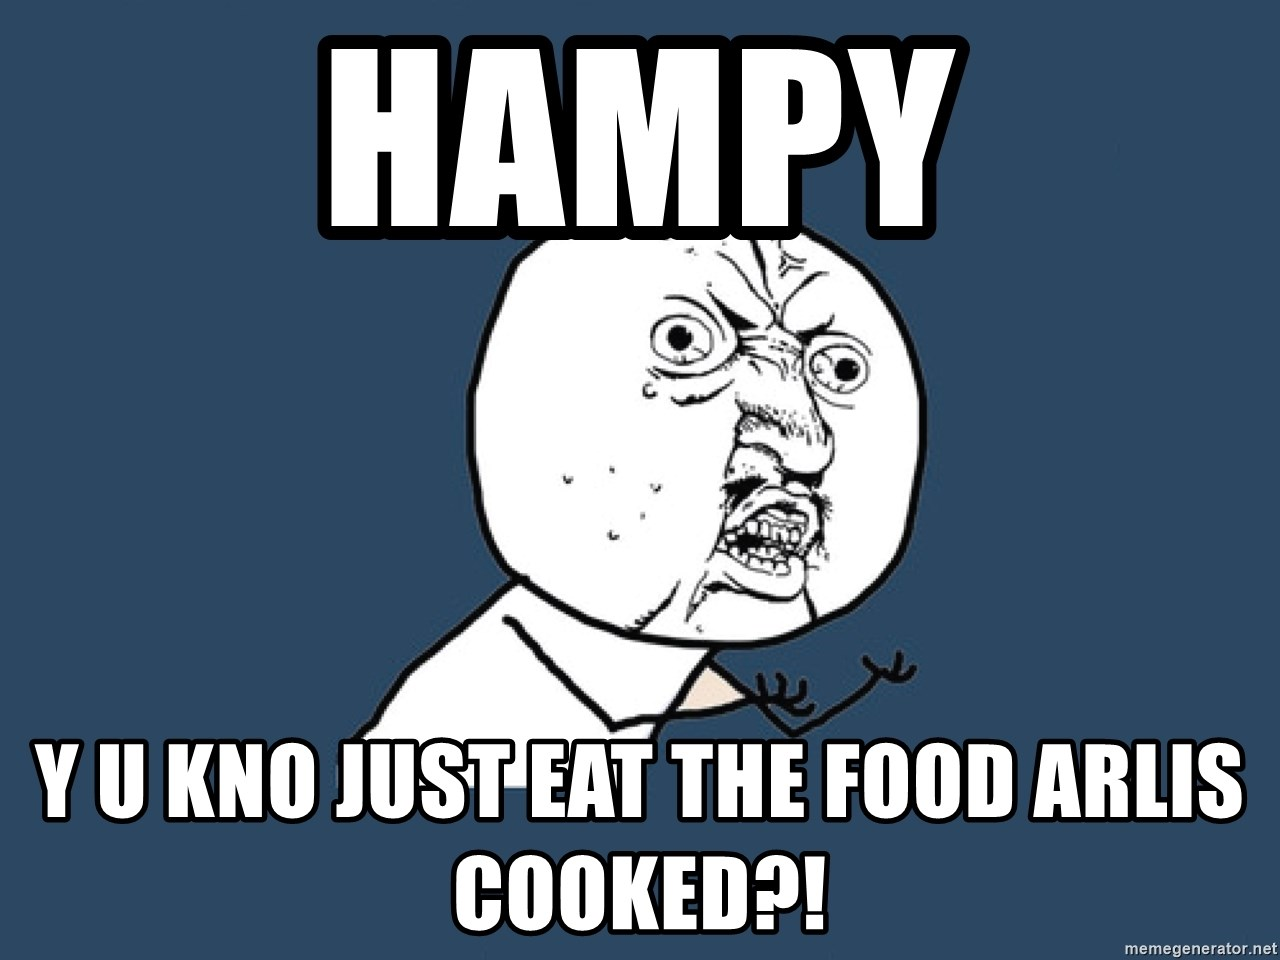 Y U No - Hampy y u kno just eat the food arlis cooked?!